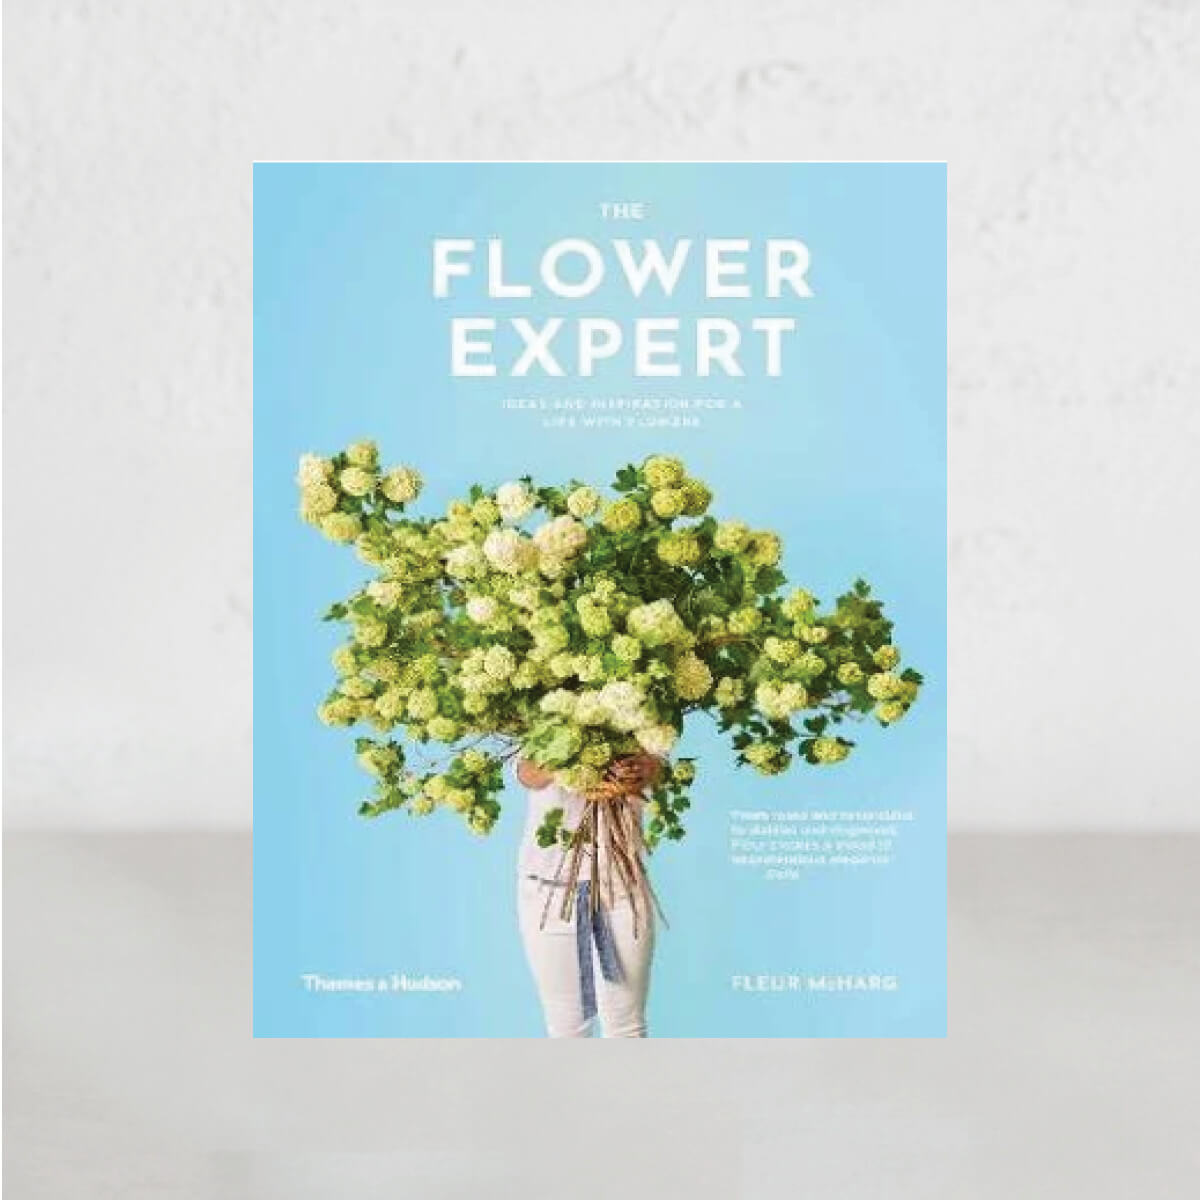 THE FLOWER EXPERT  |  FLEUR McHARG  |  SMALL VERSION